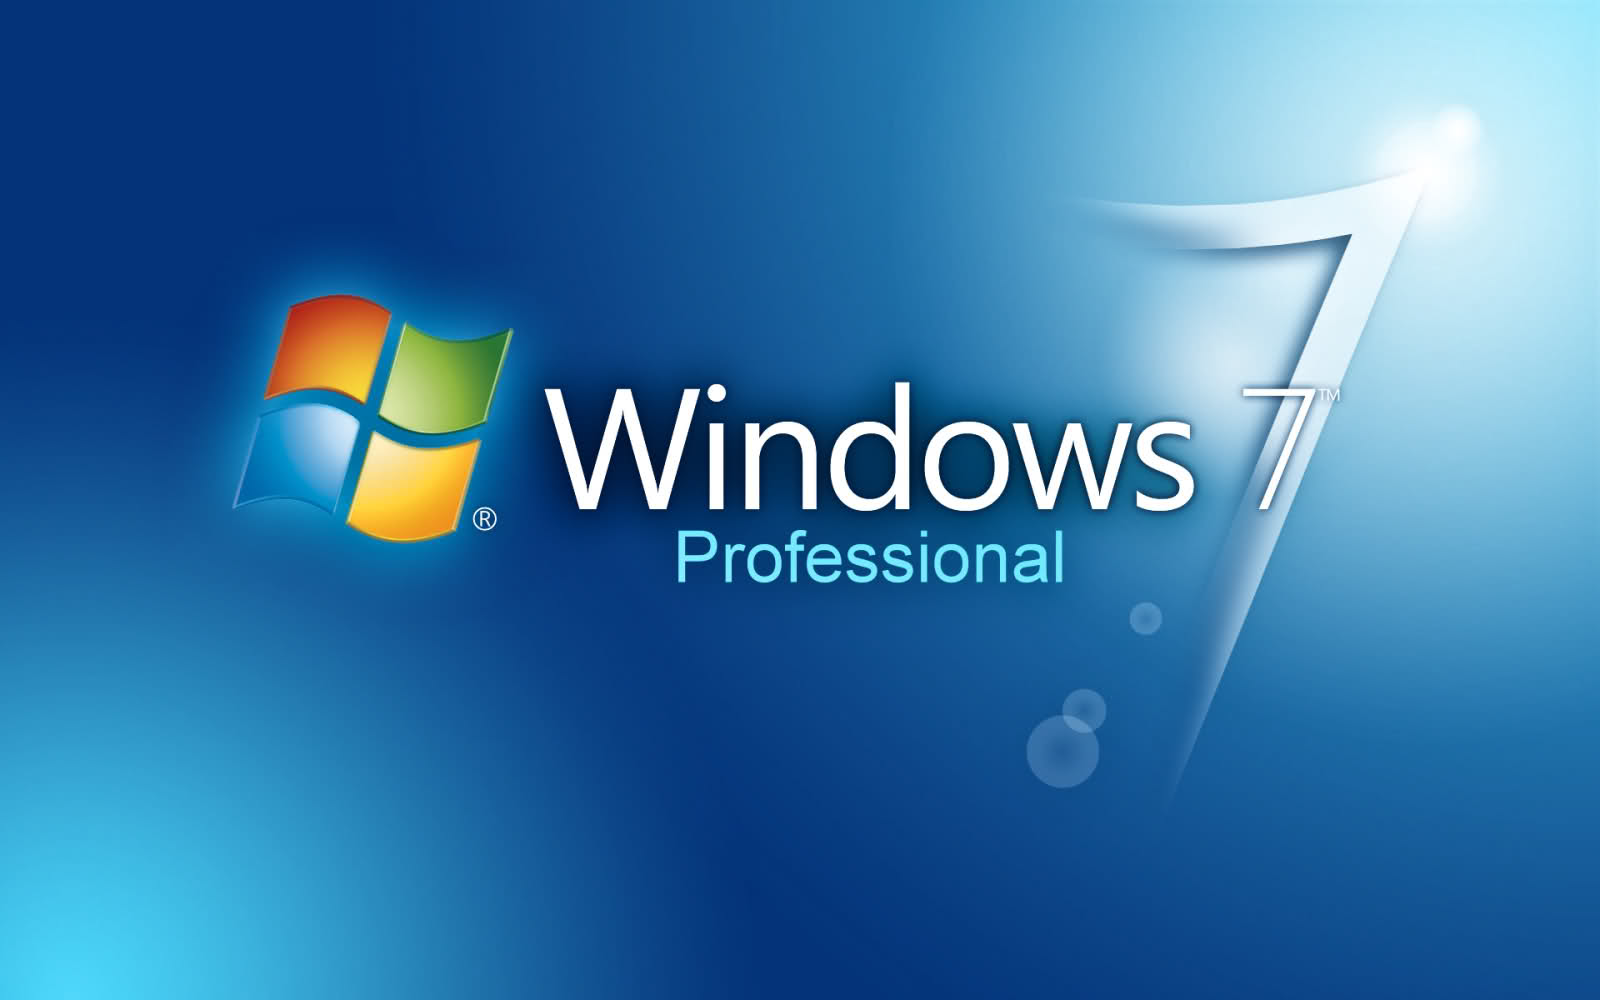 Windows 7 home premium oa mea acer group